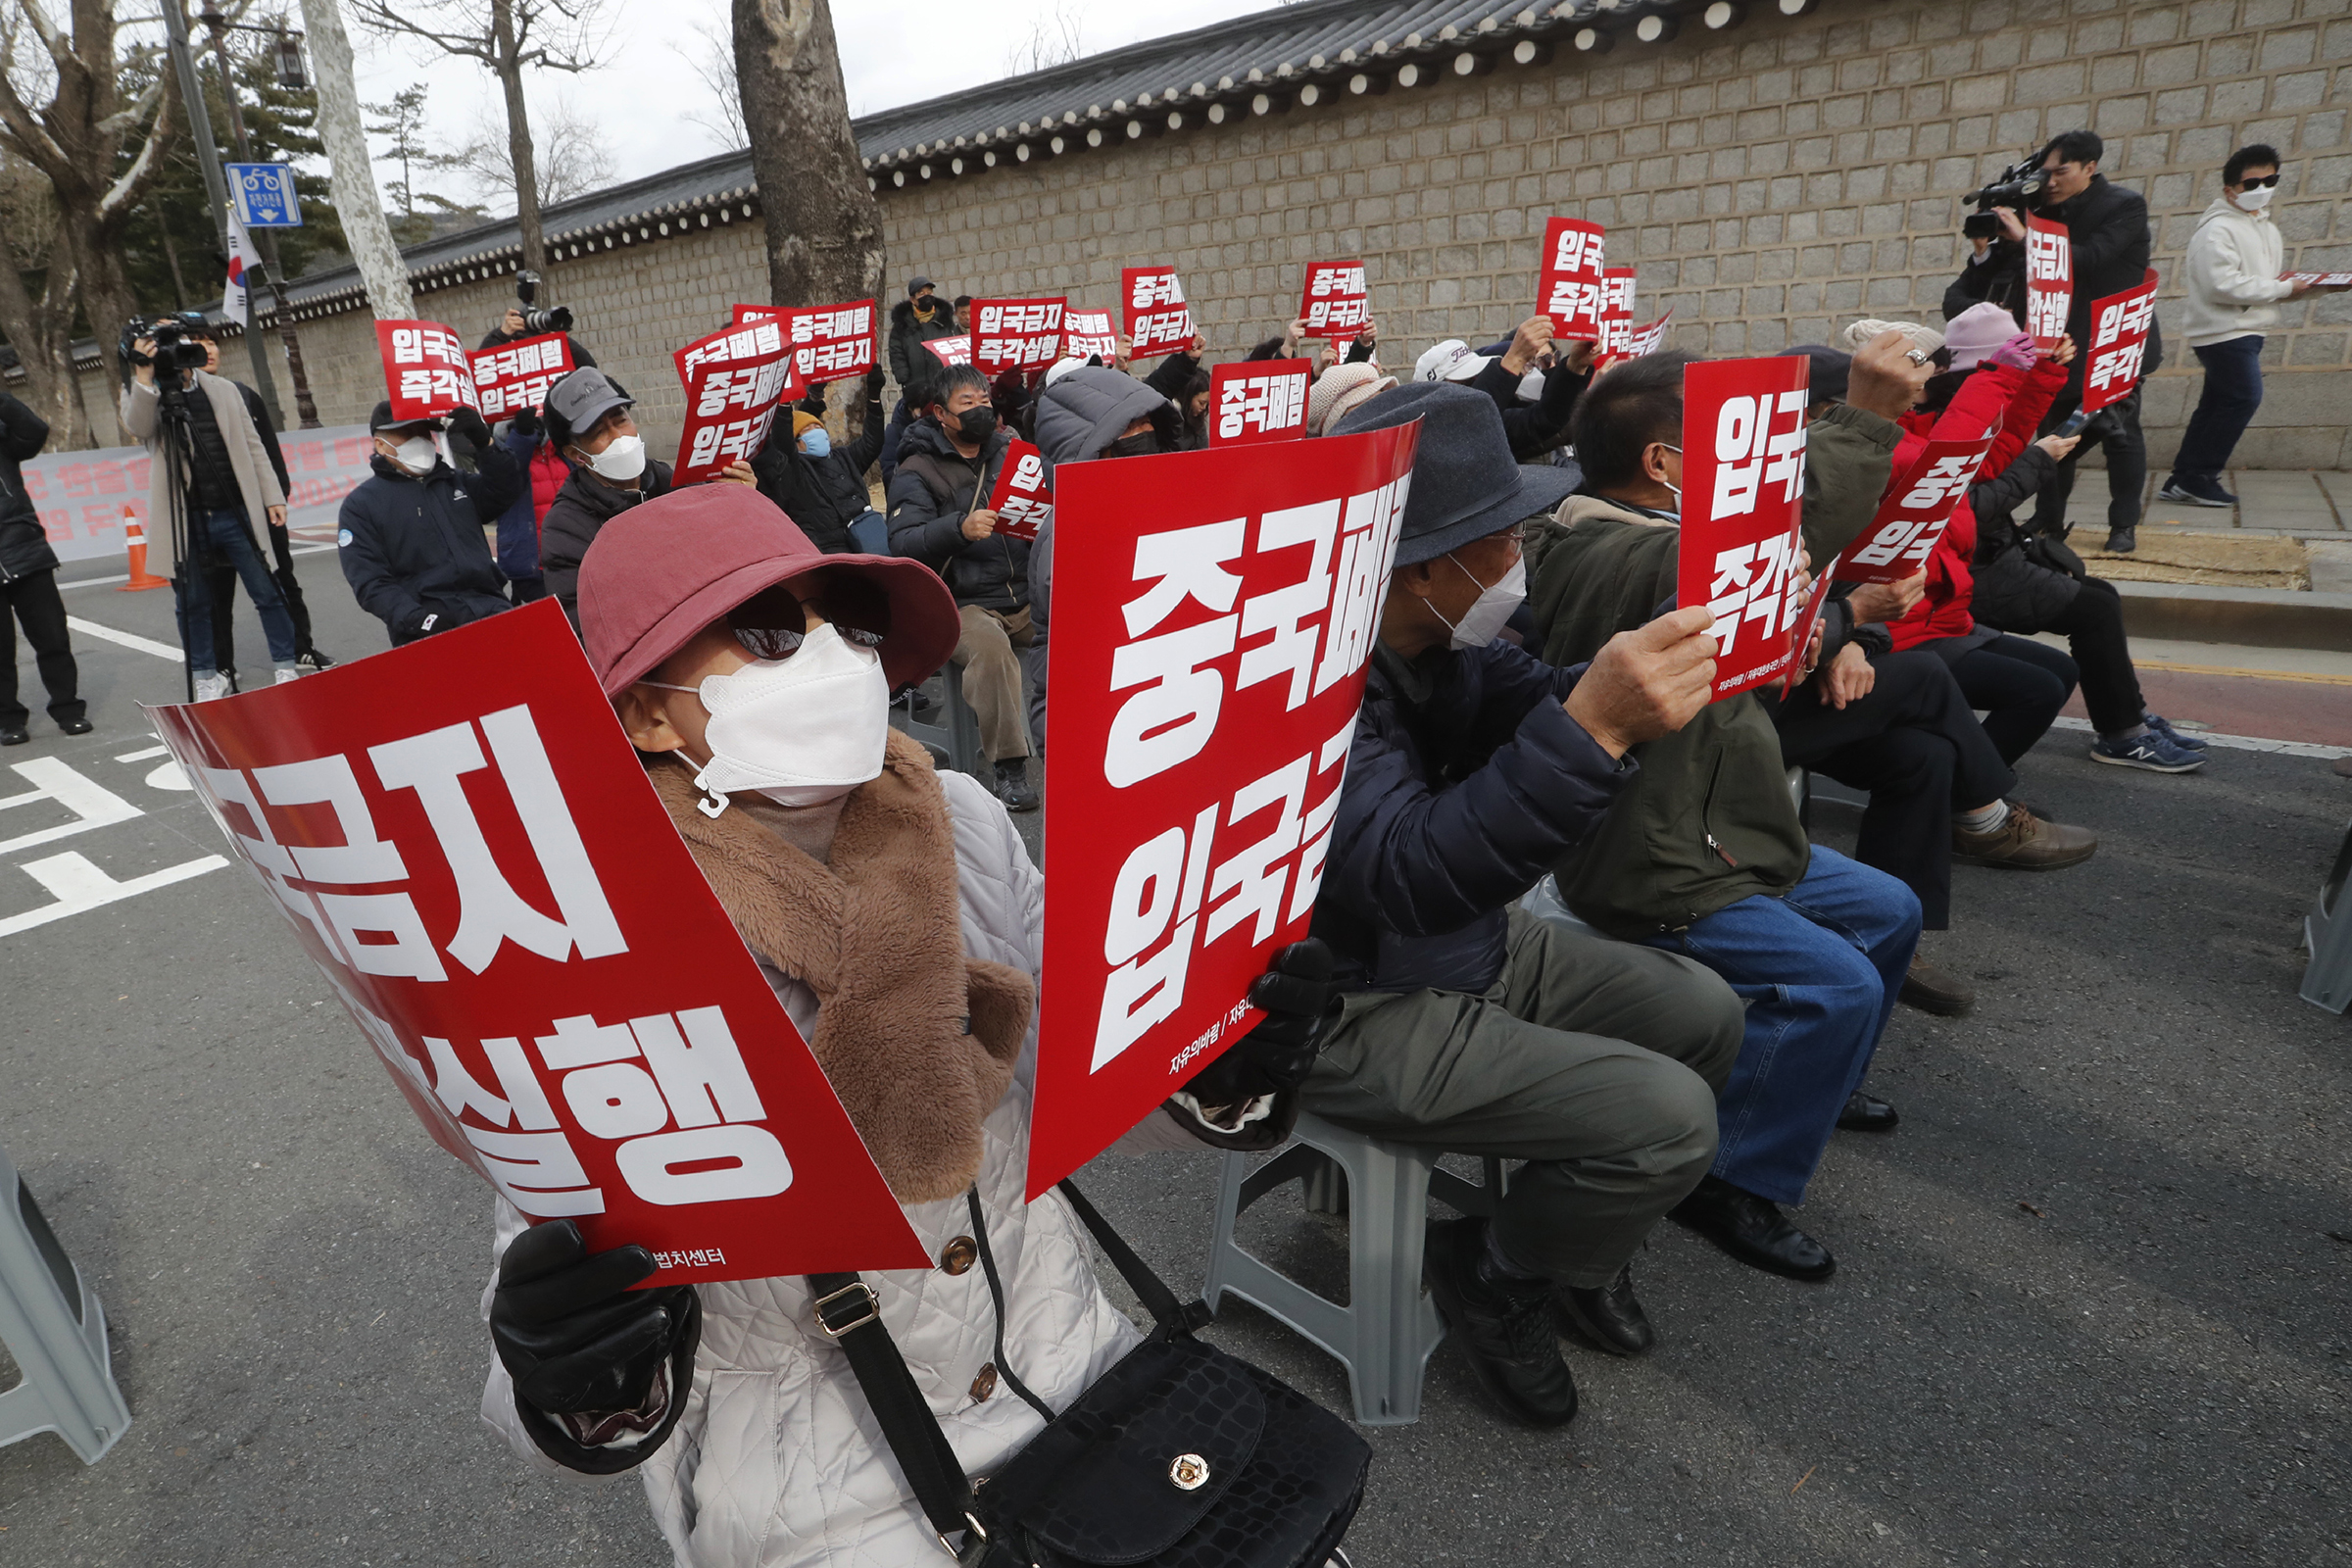 South Korean protesters stage a rally calling for a ban on Chinese people entering South Korea near the presidential Blue House in Seoul, South Korea, on Jan. 29, 2020.